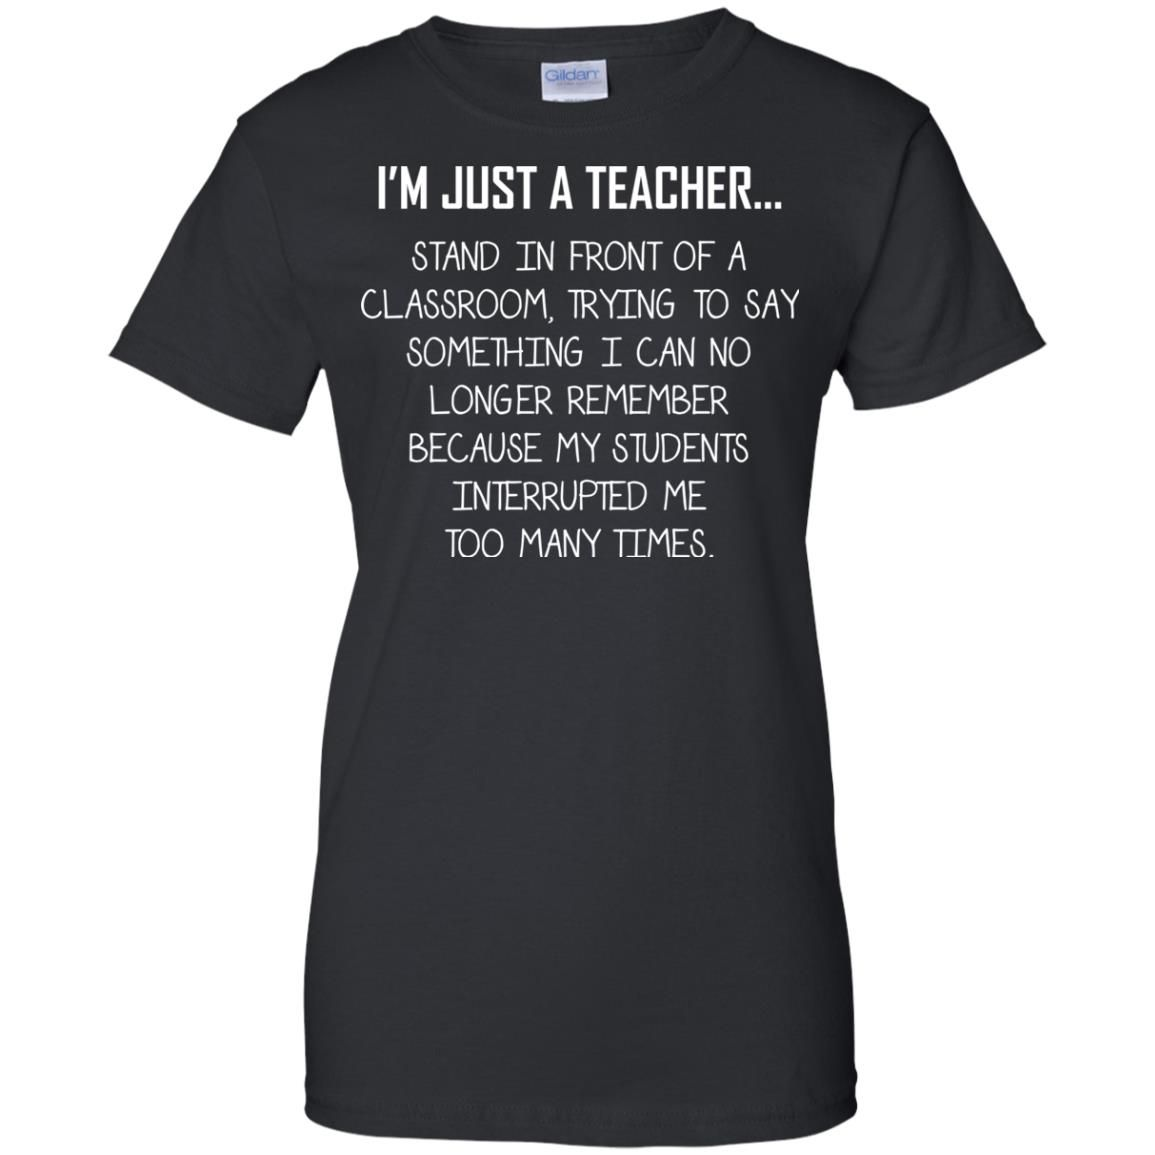 image 1337 - I'm just a teacher stand in front of a classroom shirt